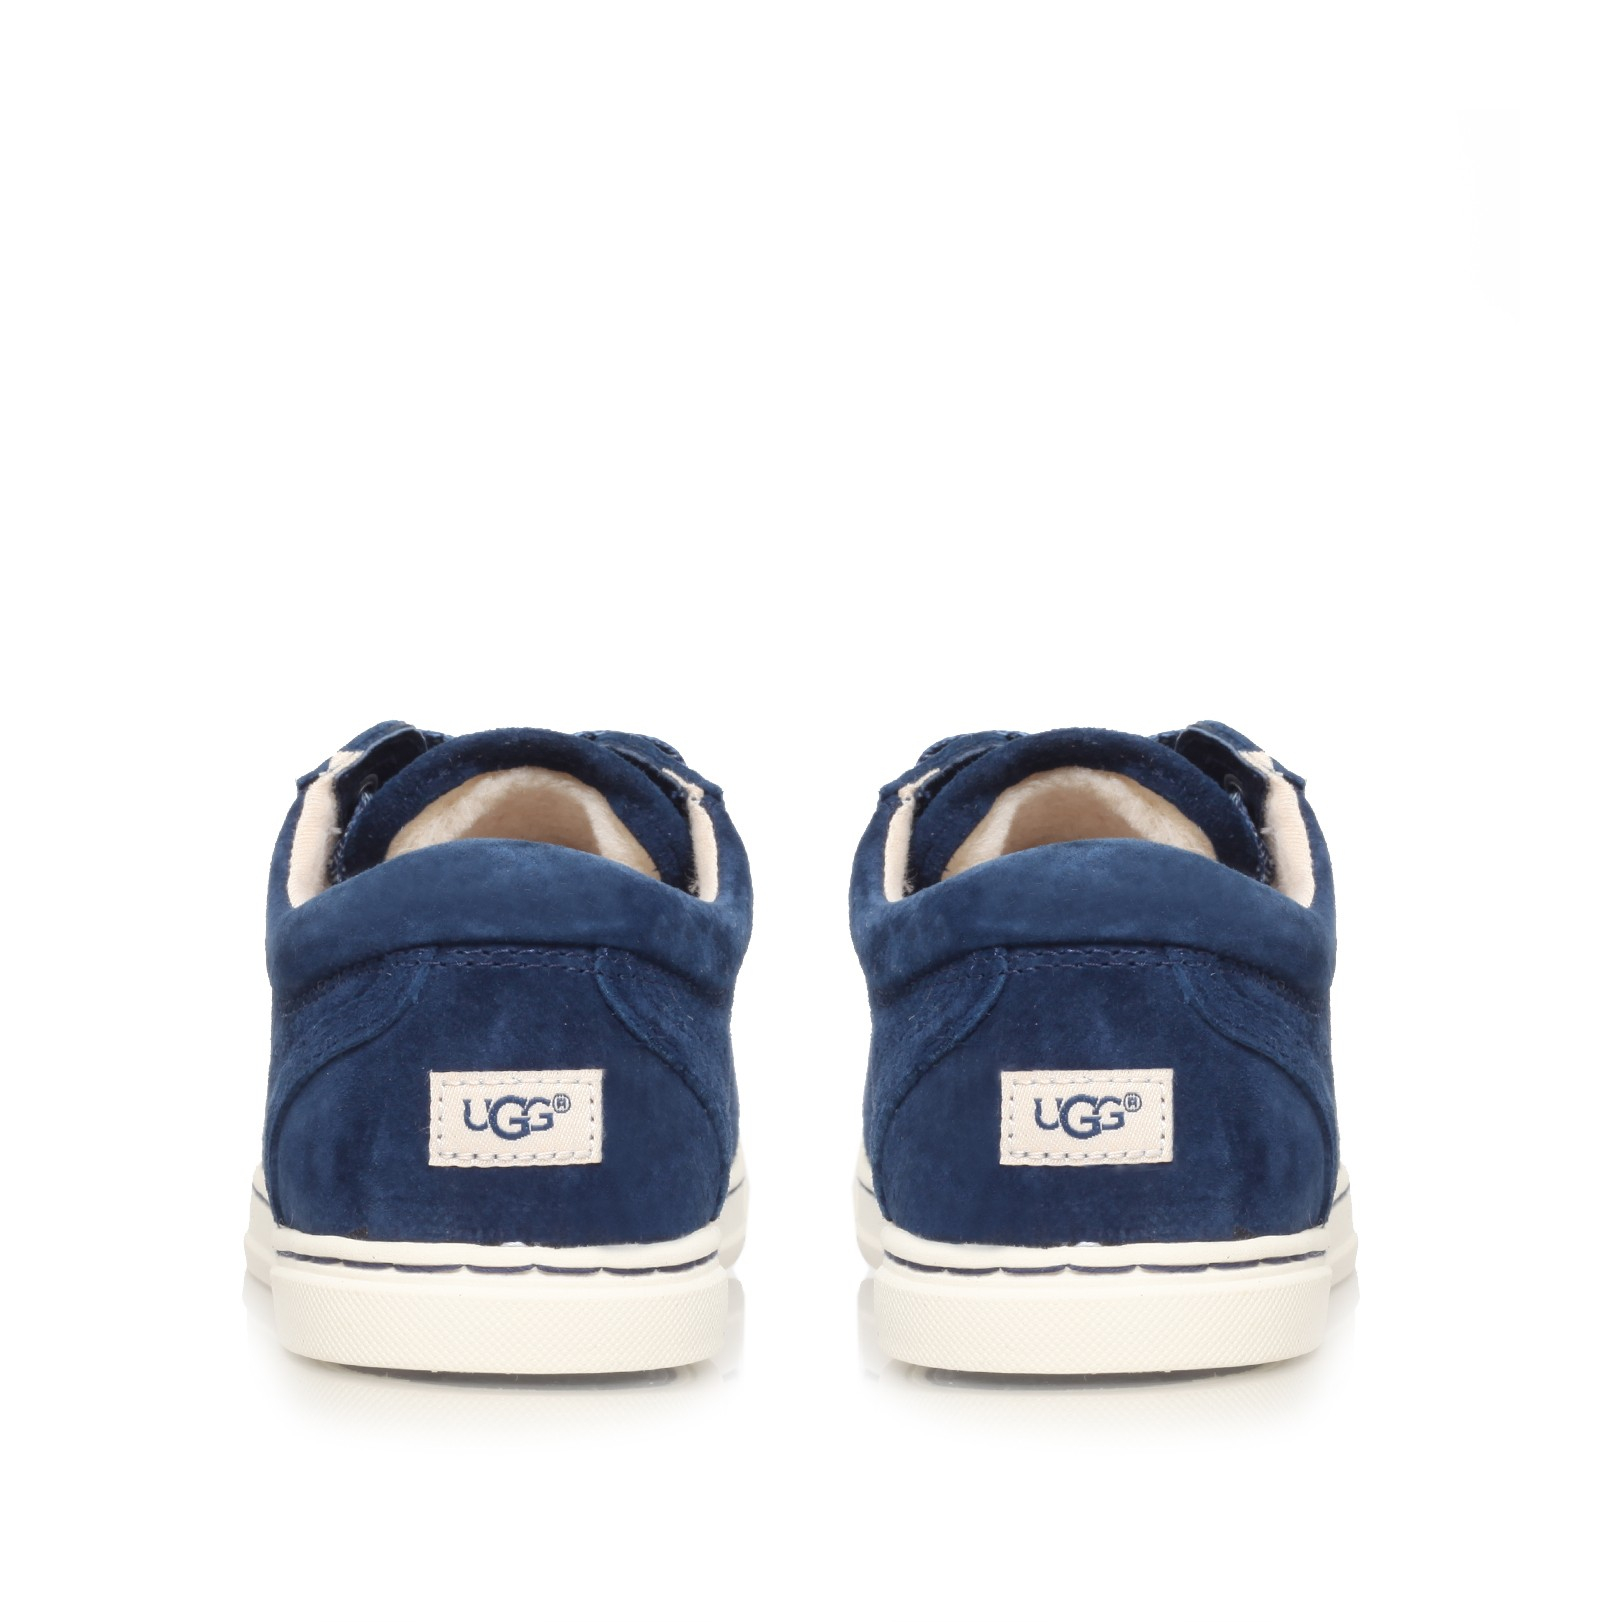 a3ed766cdc7 Ugg Tomi Scallop in Blue - Lyst